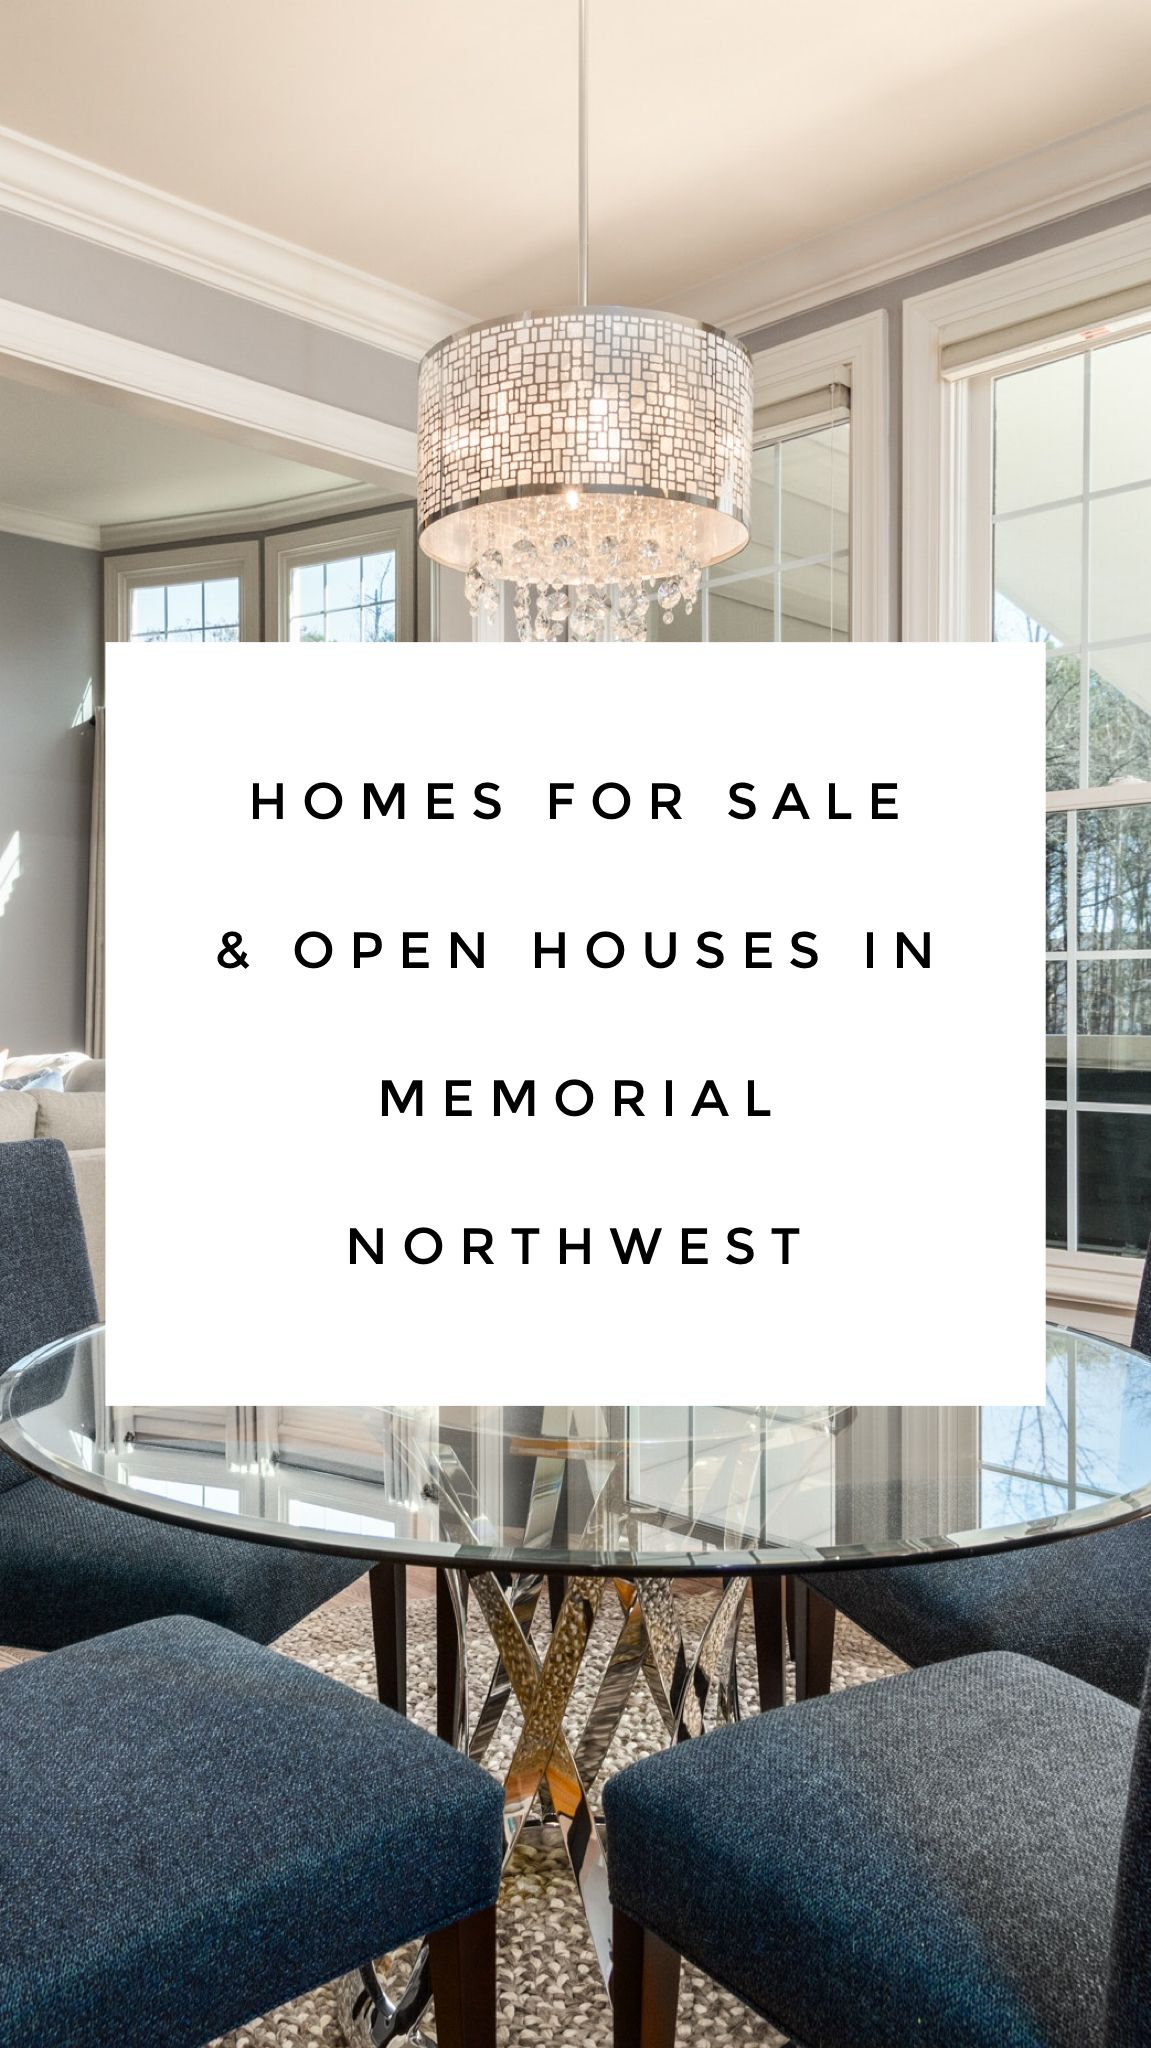 Homes for Sale & Open Houses in Memorial Northwest (With